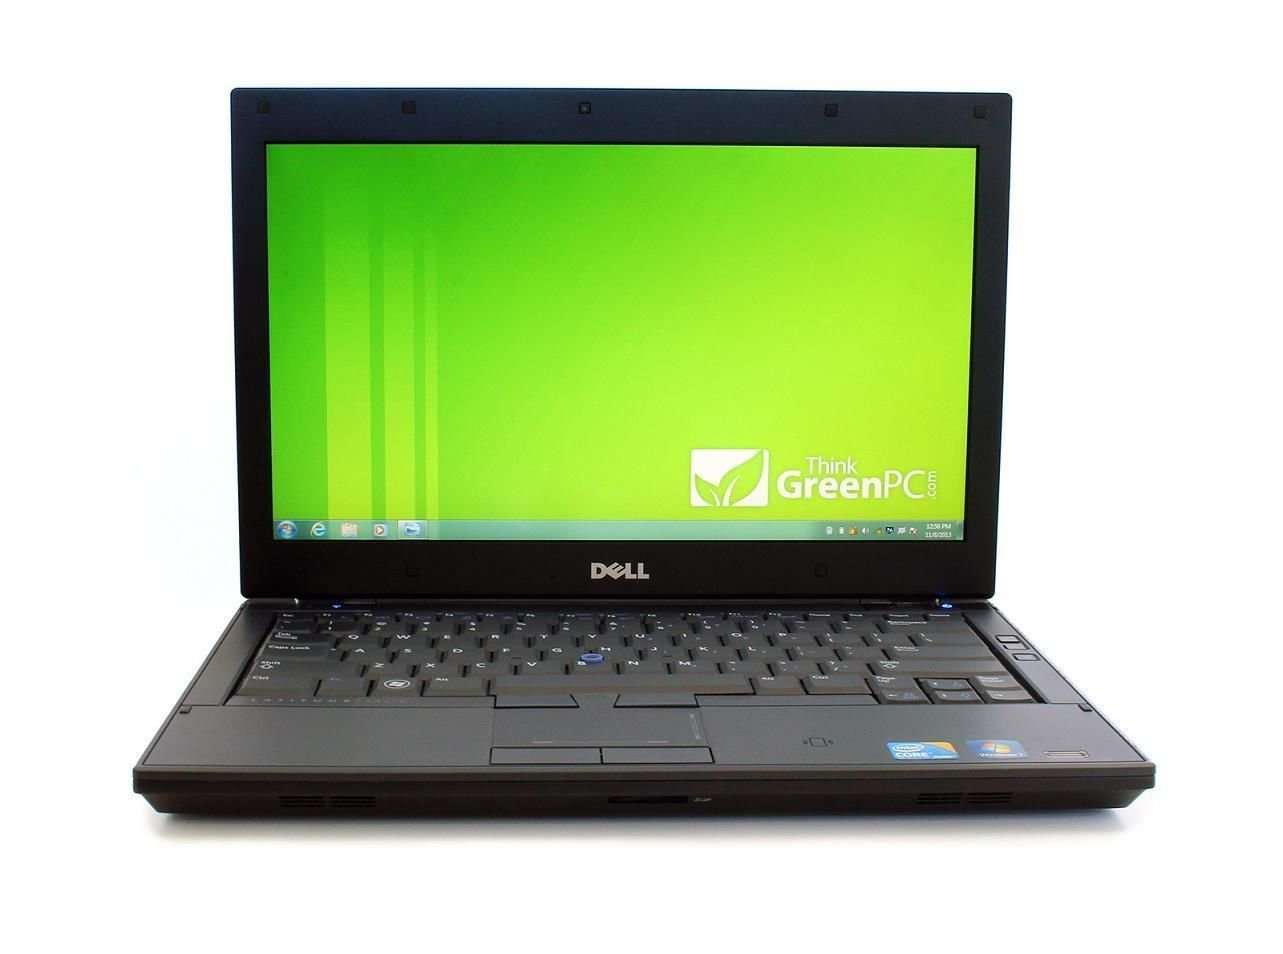 Dell Latitude E4310 Laptop i5 2.4Ghz 4GB Ram 160GB SATA Windows 7 P with Webcam DVDRW MS Office 30 Day Free Trial & Kaspersky Anti-Virus